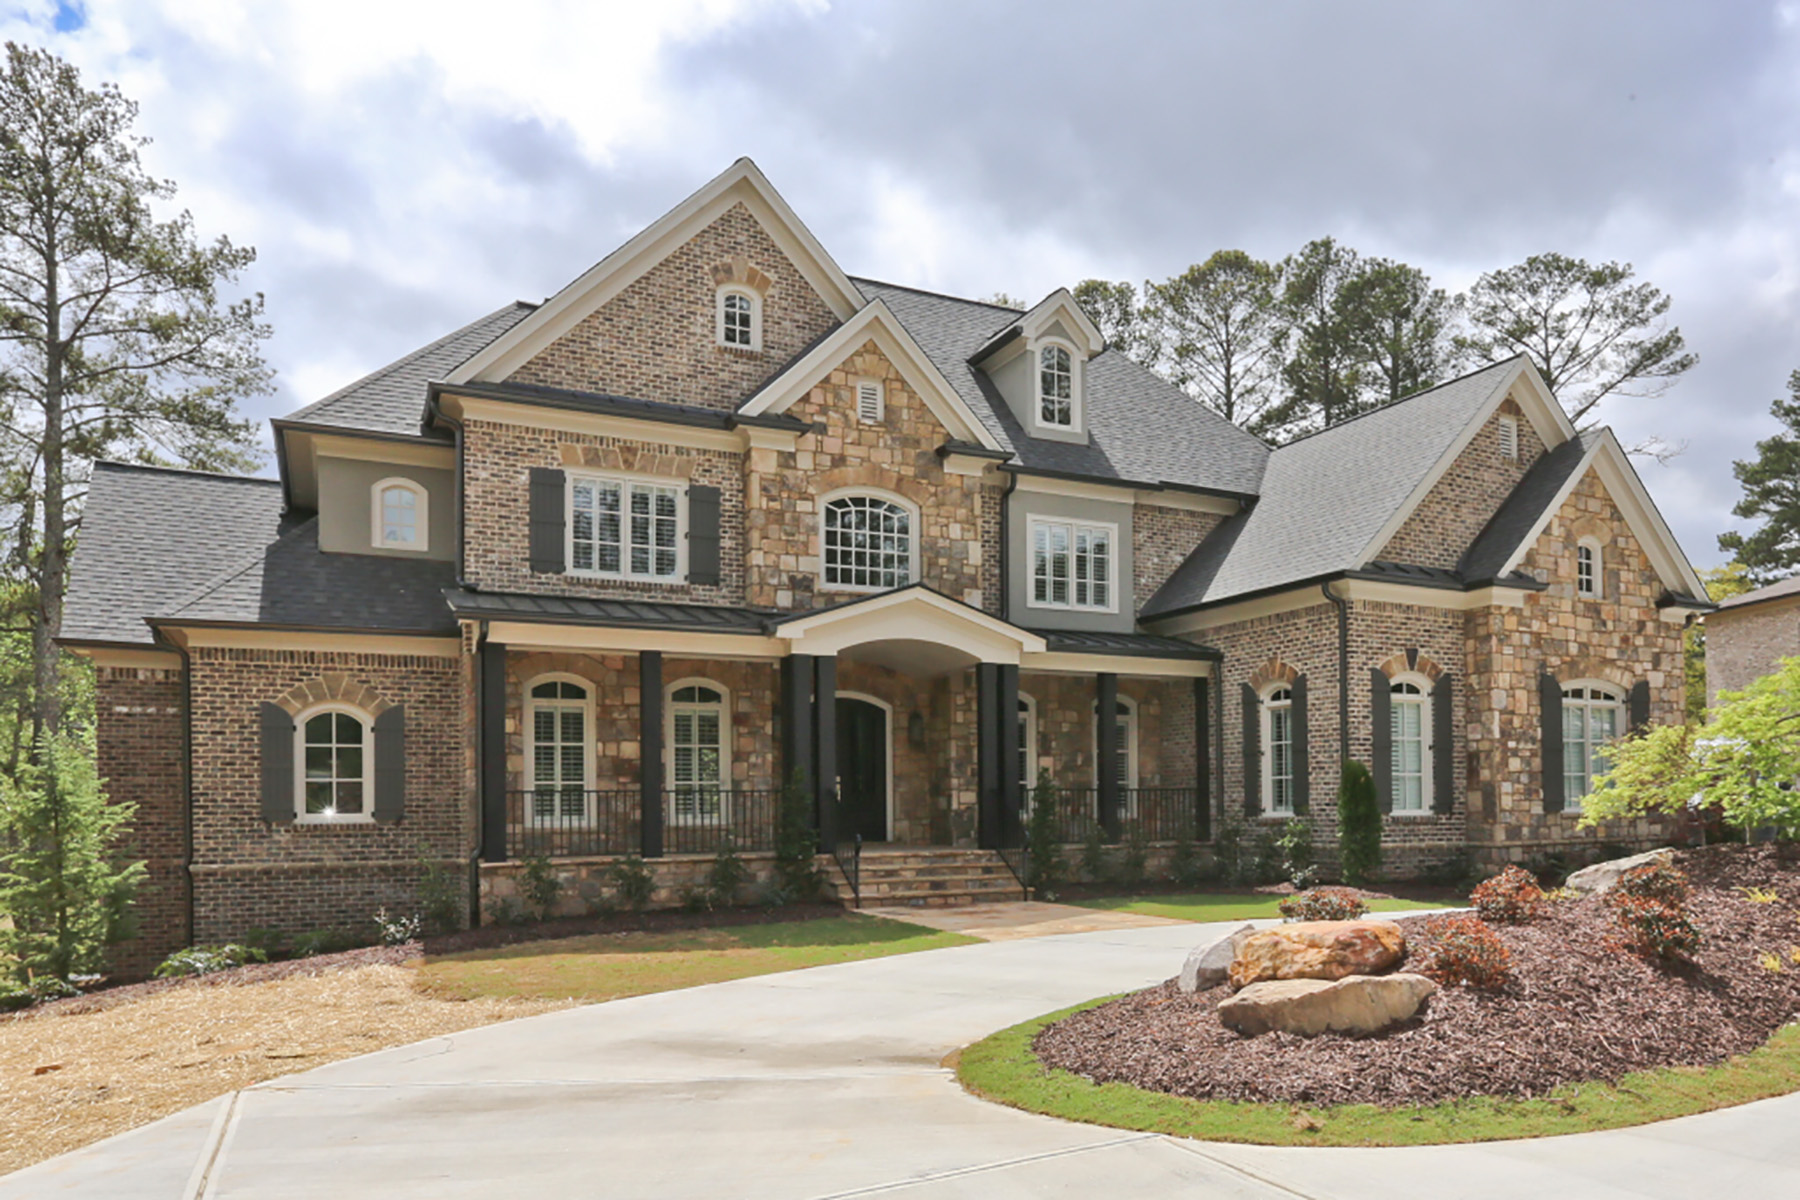 Single Family Home for Sale at Rare New Construction Opportunity in Country Club Of The South 2009 Westbourne Way Johns Creek, Georgia 30022 United States